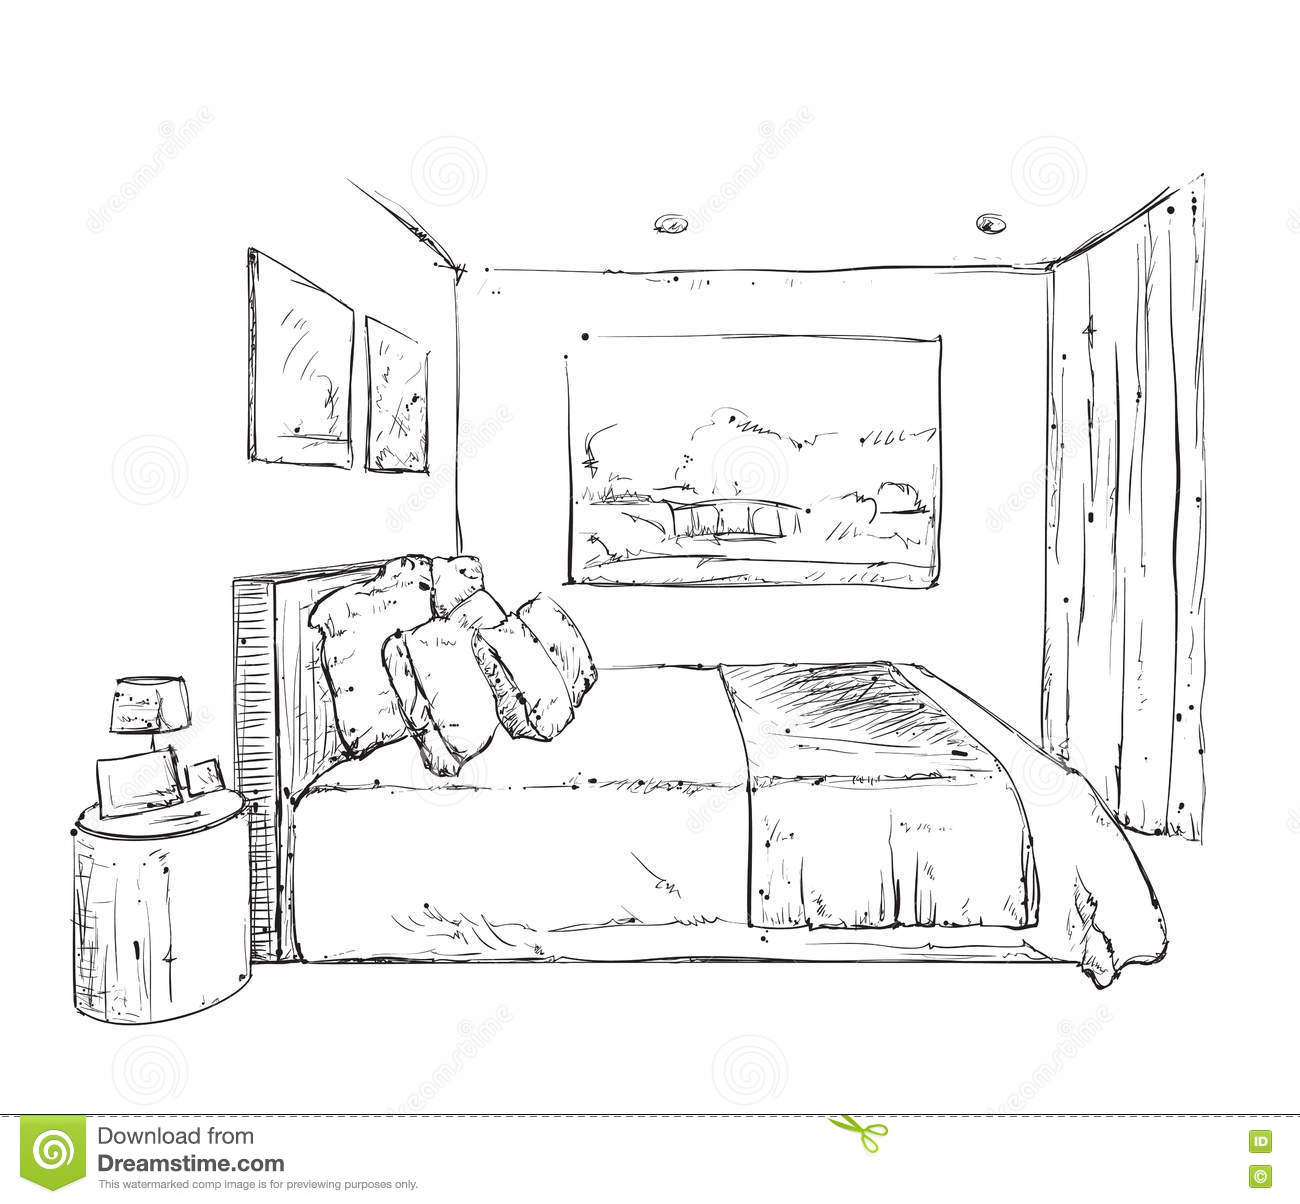 hand drawn bedroom interior sketch stock vector - image: 72902495, Schlafzimmer entwurf